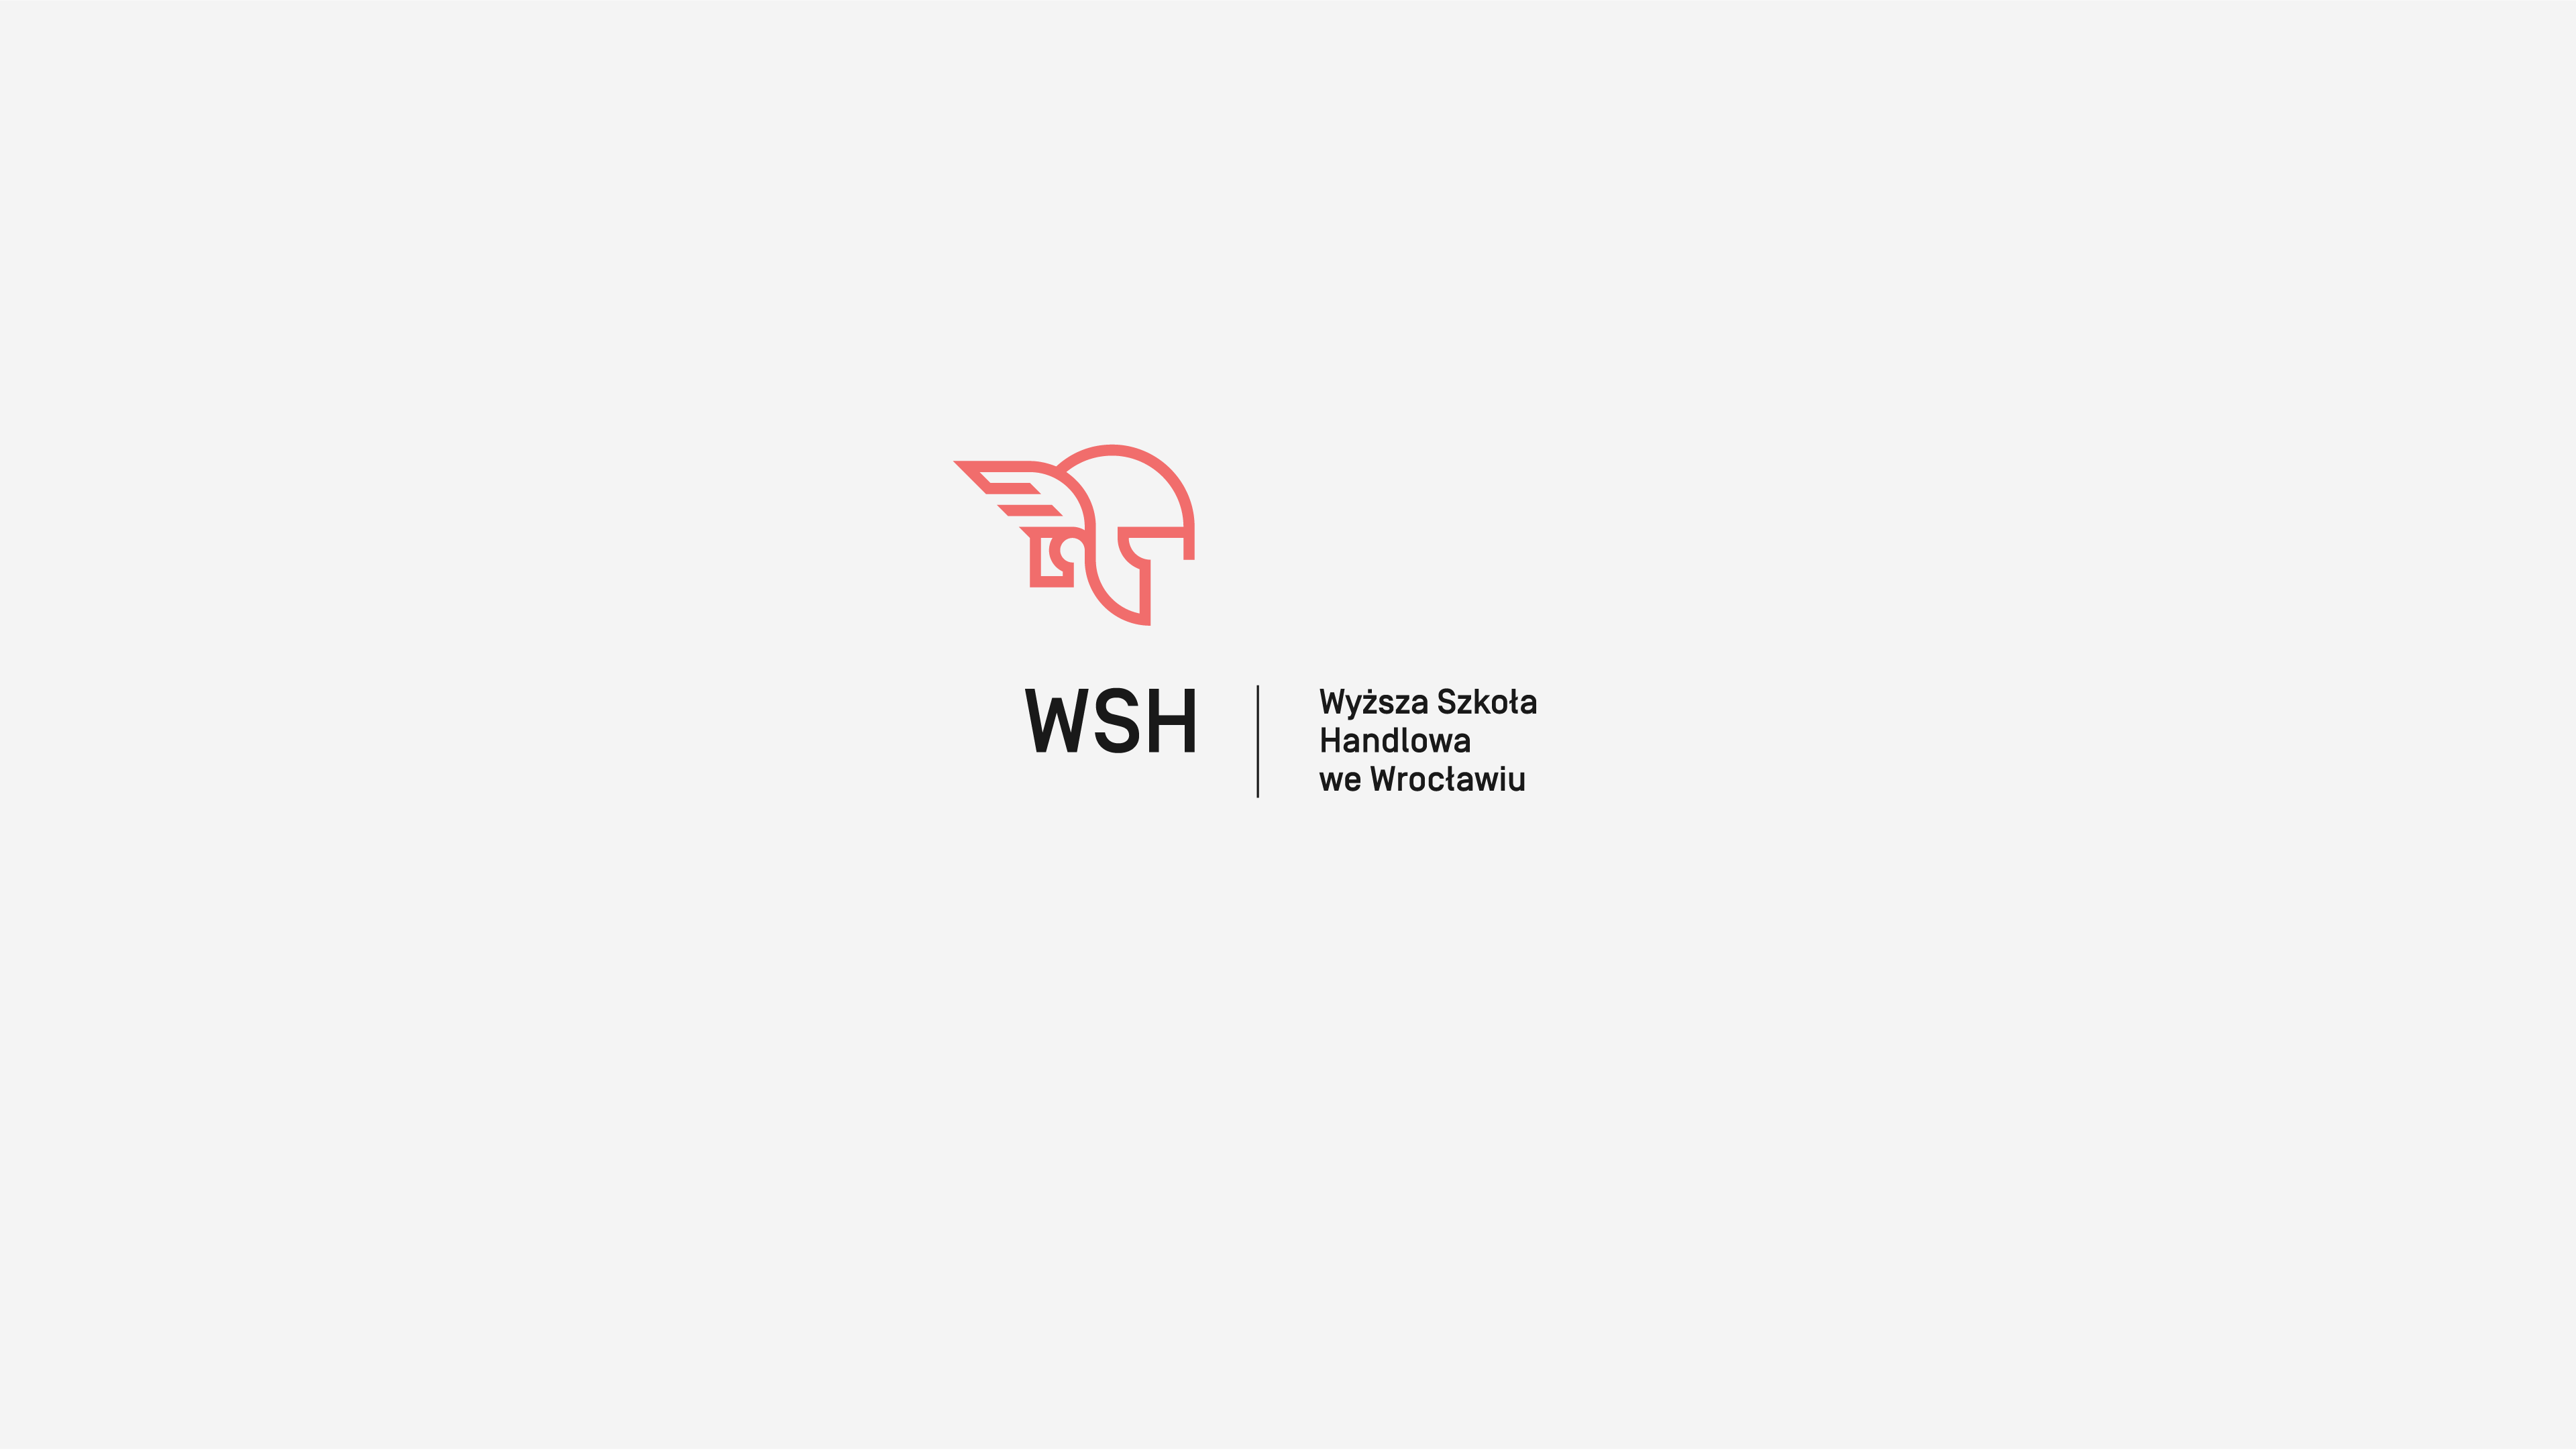 WSH - The Codeine Design